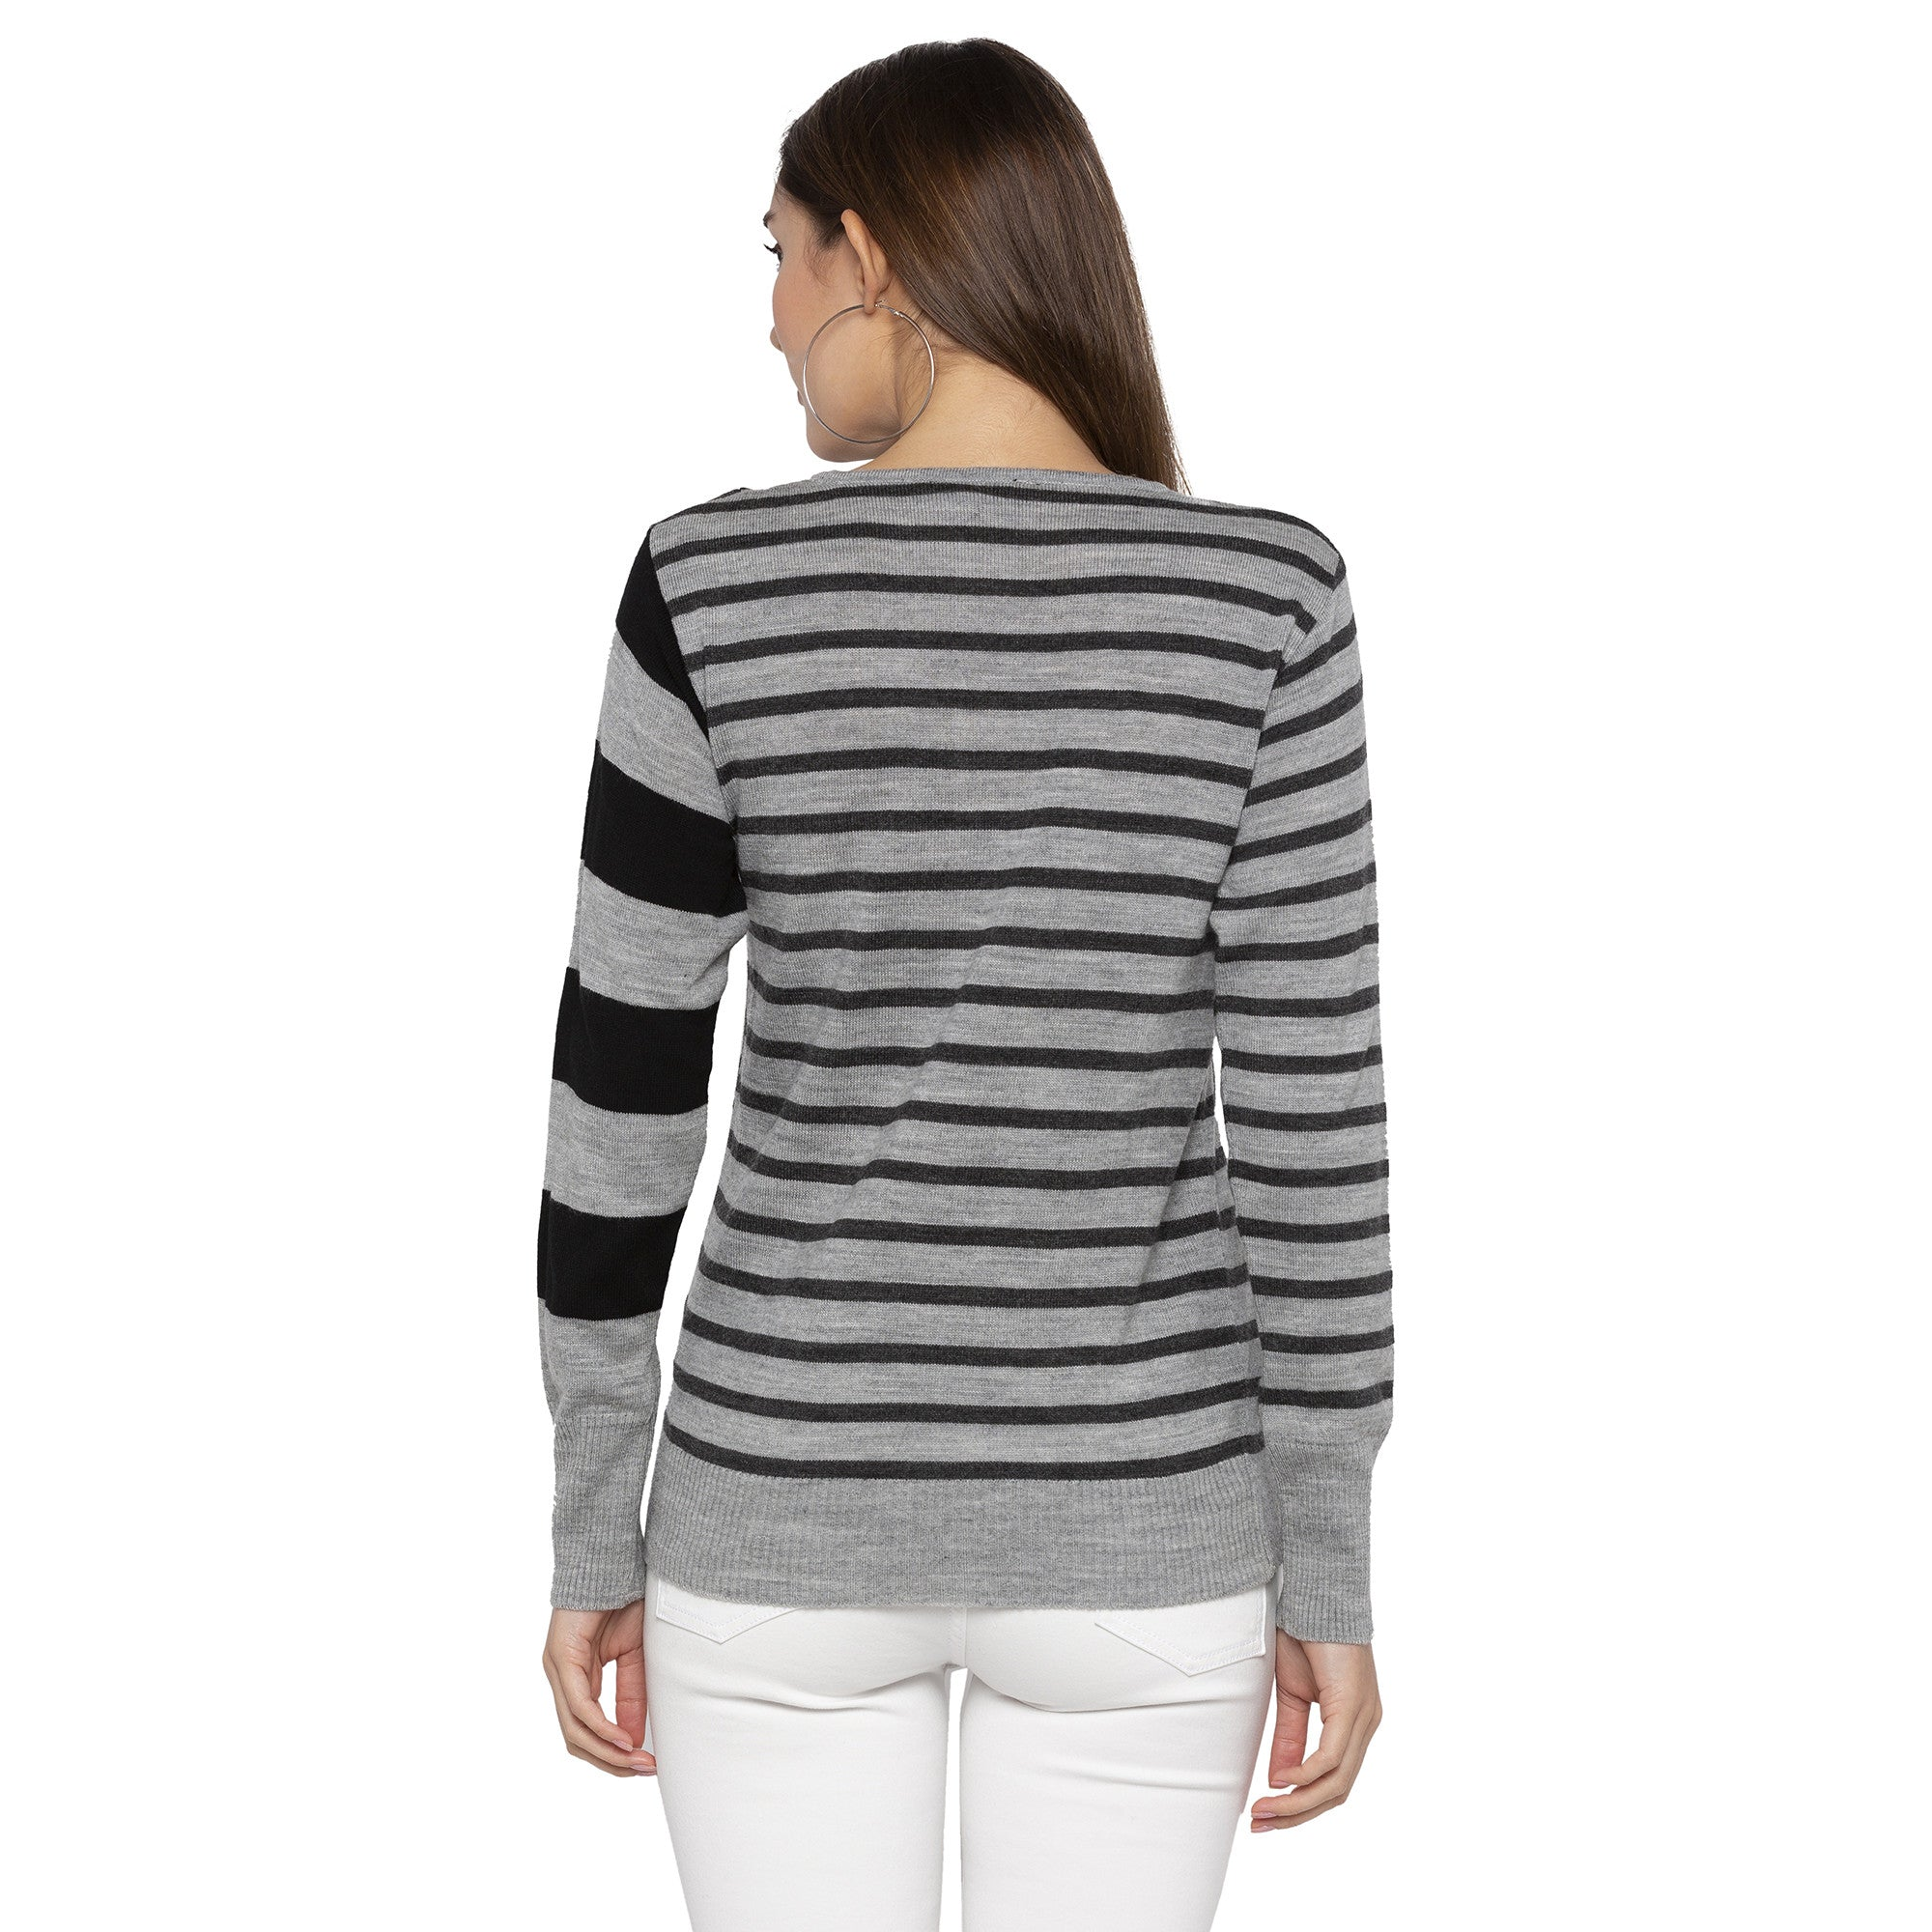 Casual Grey Color Striped Slim Fit Tops-3